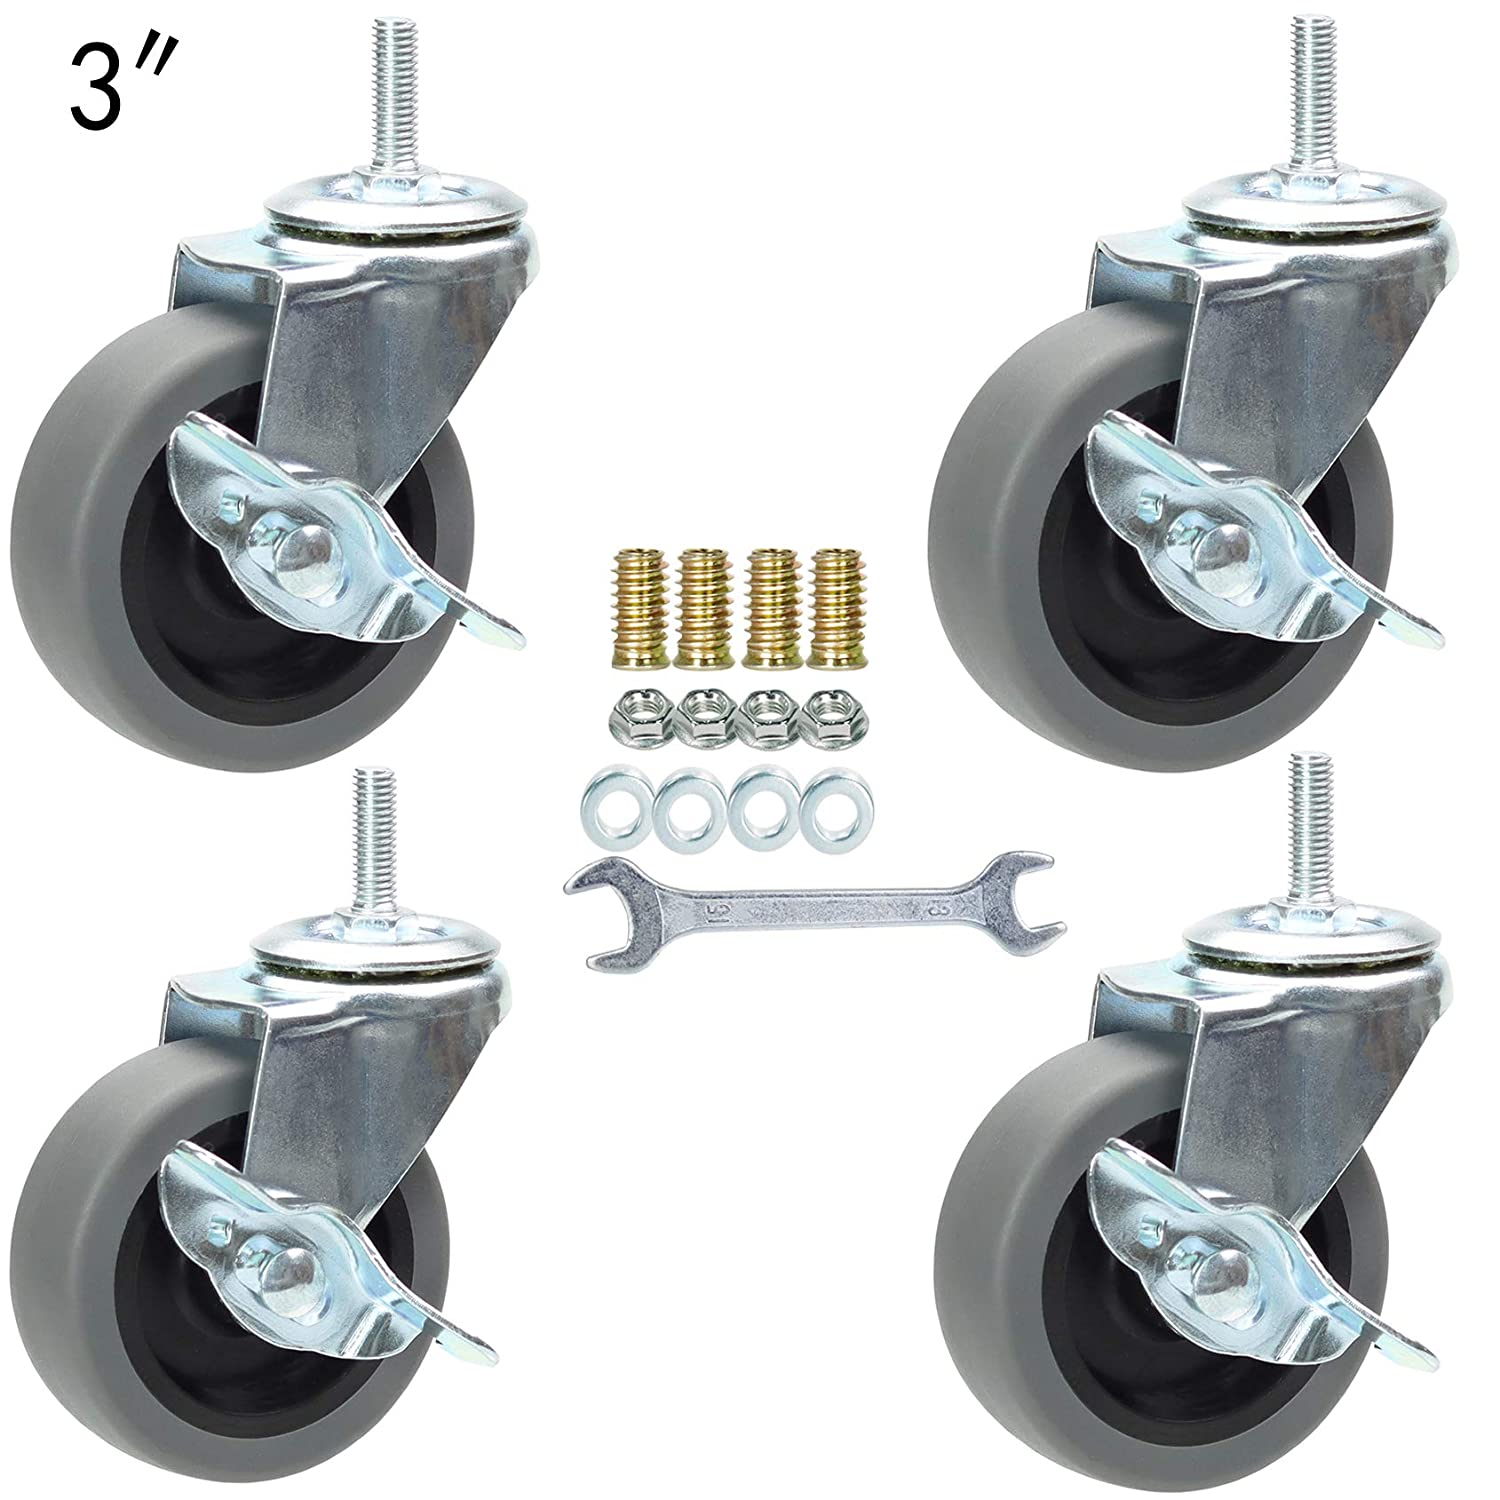 3 Inch Swivel Stem Caster Wheels with Brake Set of 4, M8-1.25 Threaded Stem Industrial Rubber Casters, Replacement for Furniture Workbench and Trolley.(Grey)